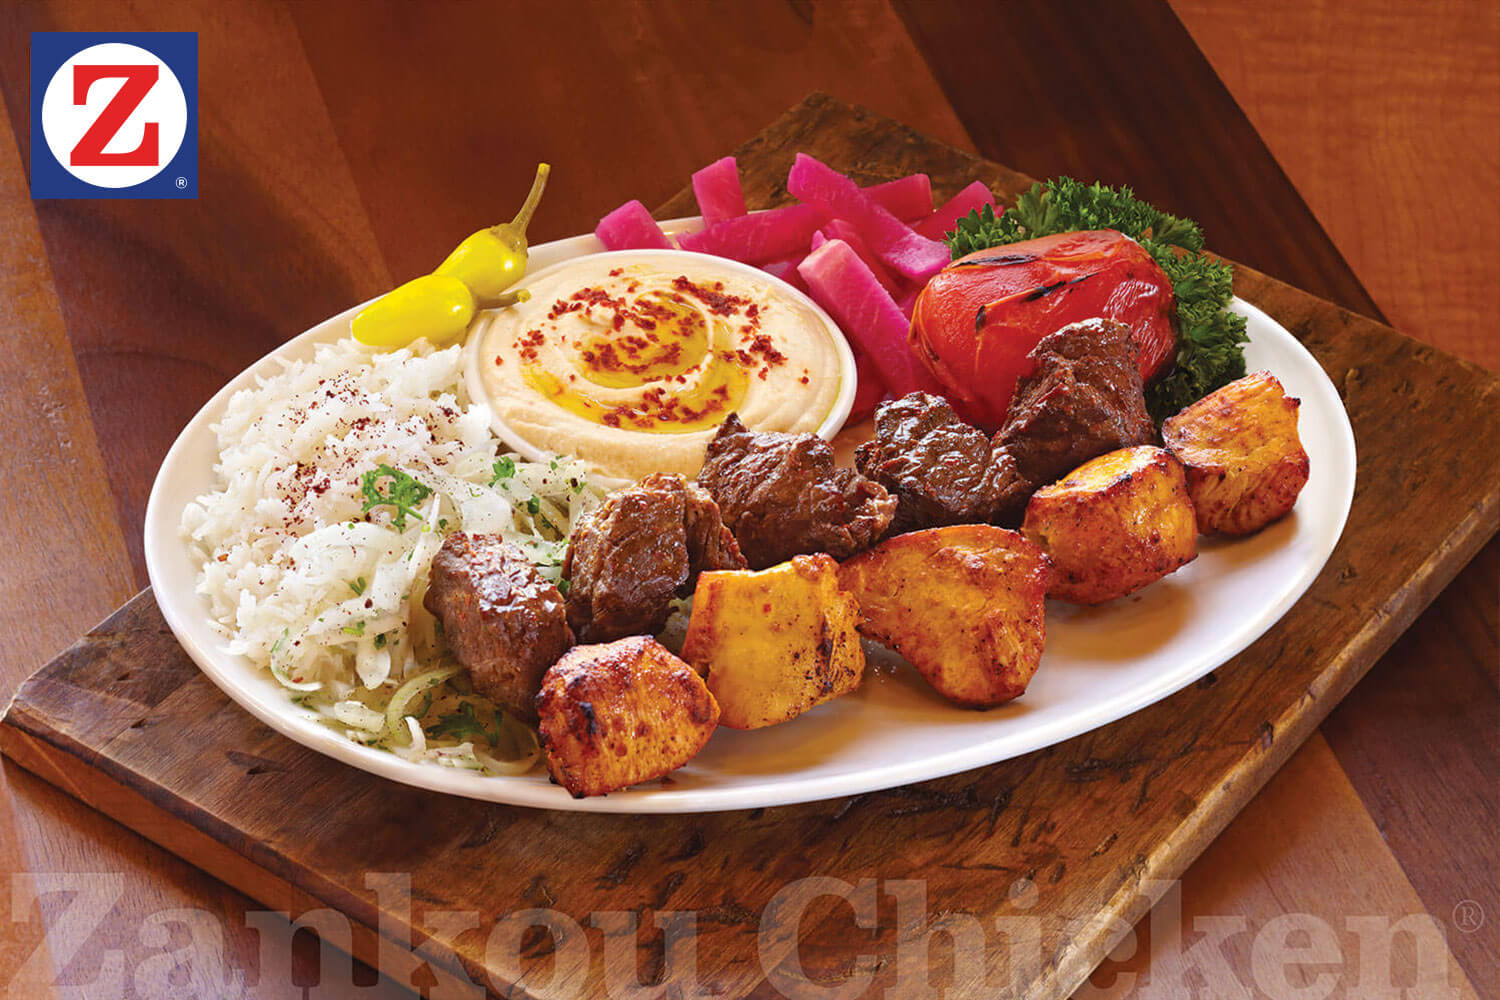 Combo steak and chicken kabob plate with sides